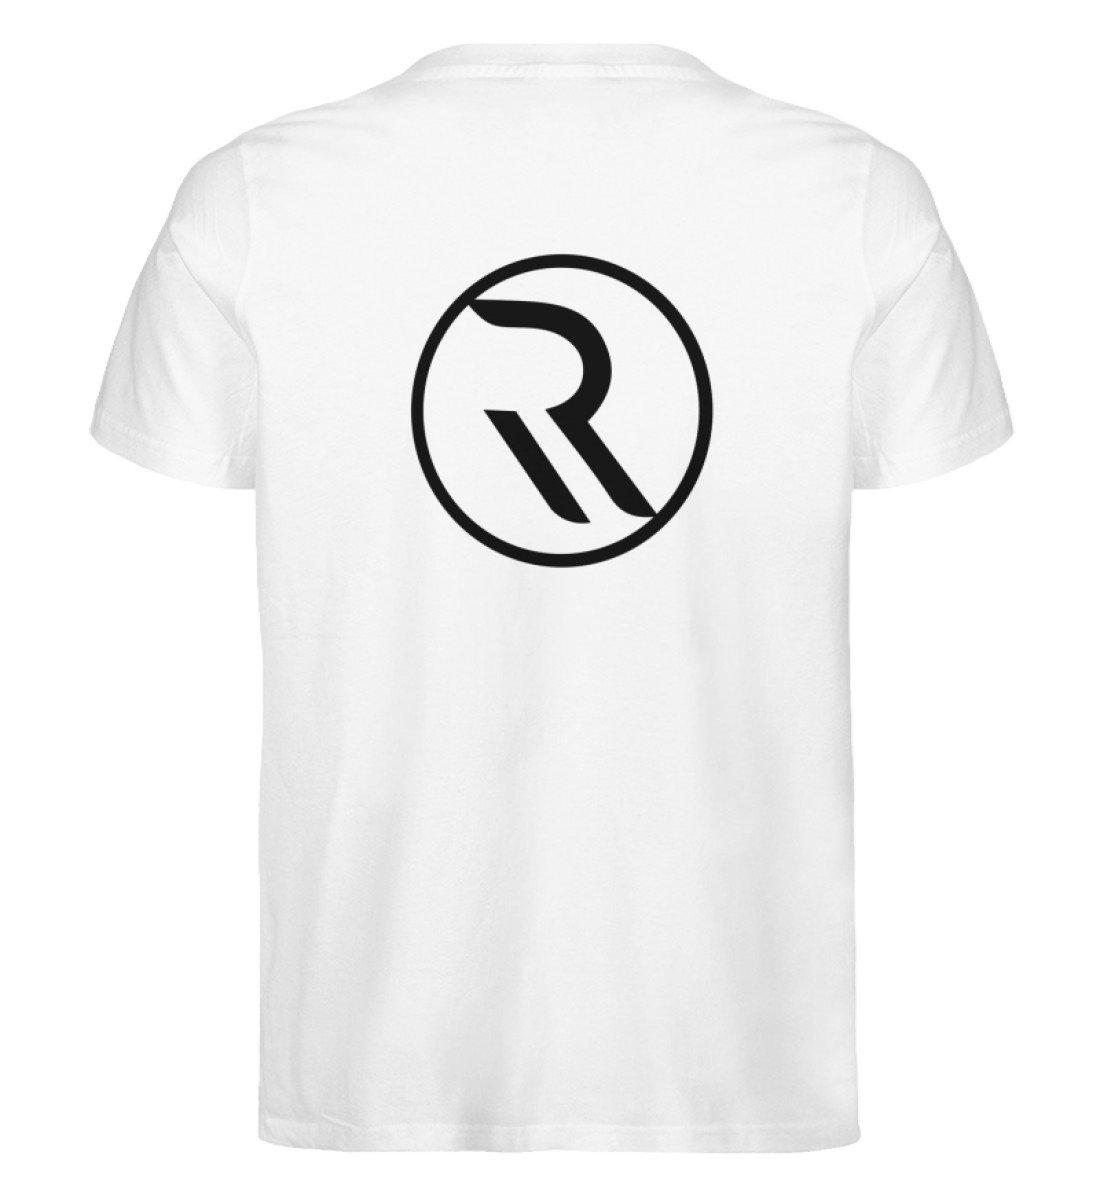 ROPEMAKER RAVE-ON!®️ WHITE T-SHIRT - Herren Premium Organic Shirt Creator T-Shirt ST/ST White / S - Rave On!® der Club & Techno Szene Shop für Coole Junge Mode Streetwear Style & Fashion Outfits + Sexy Festival 420 Stuff